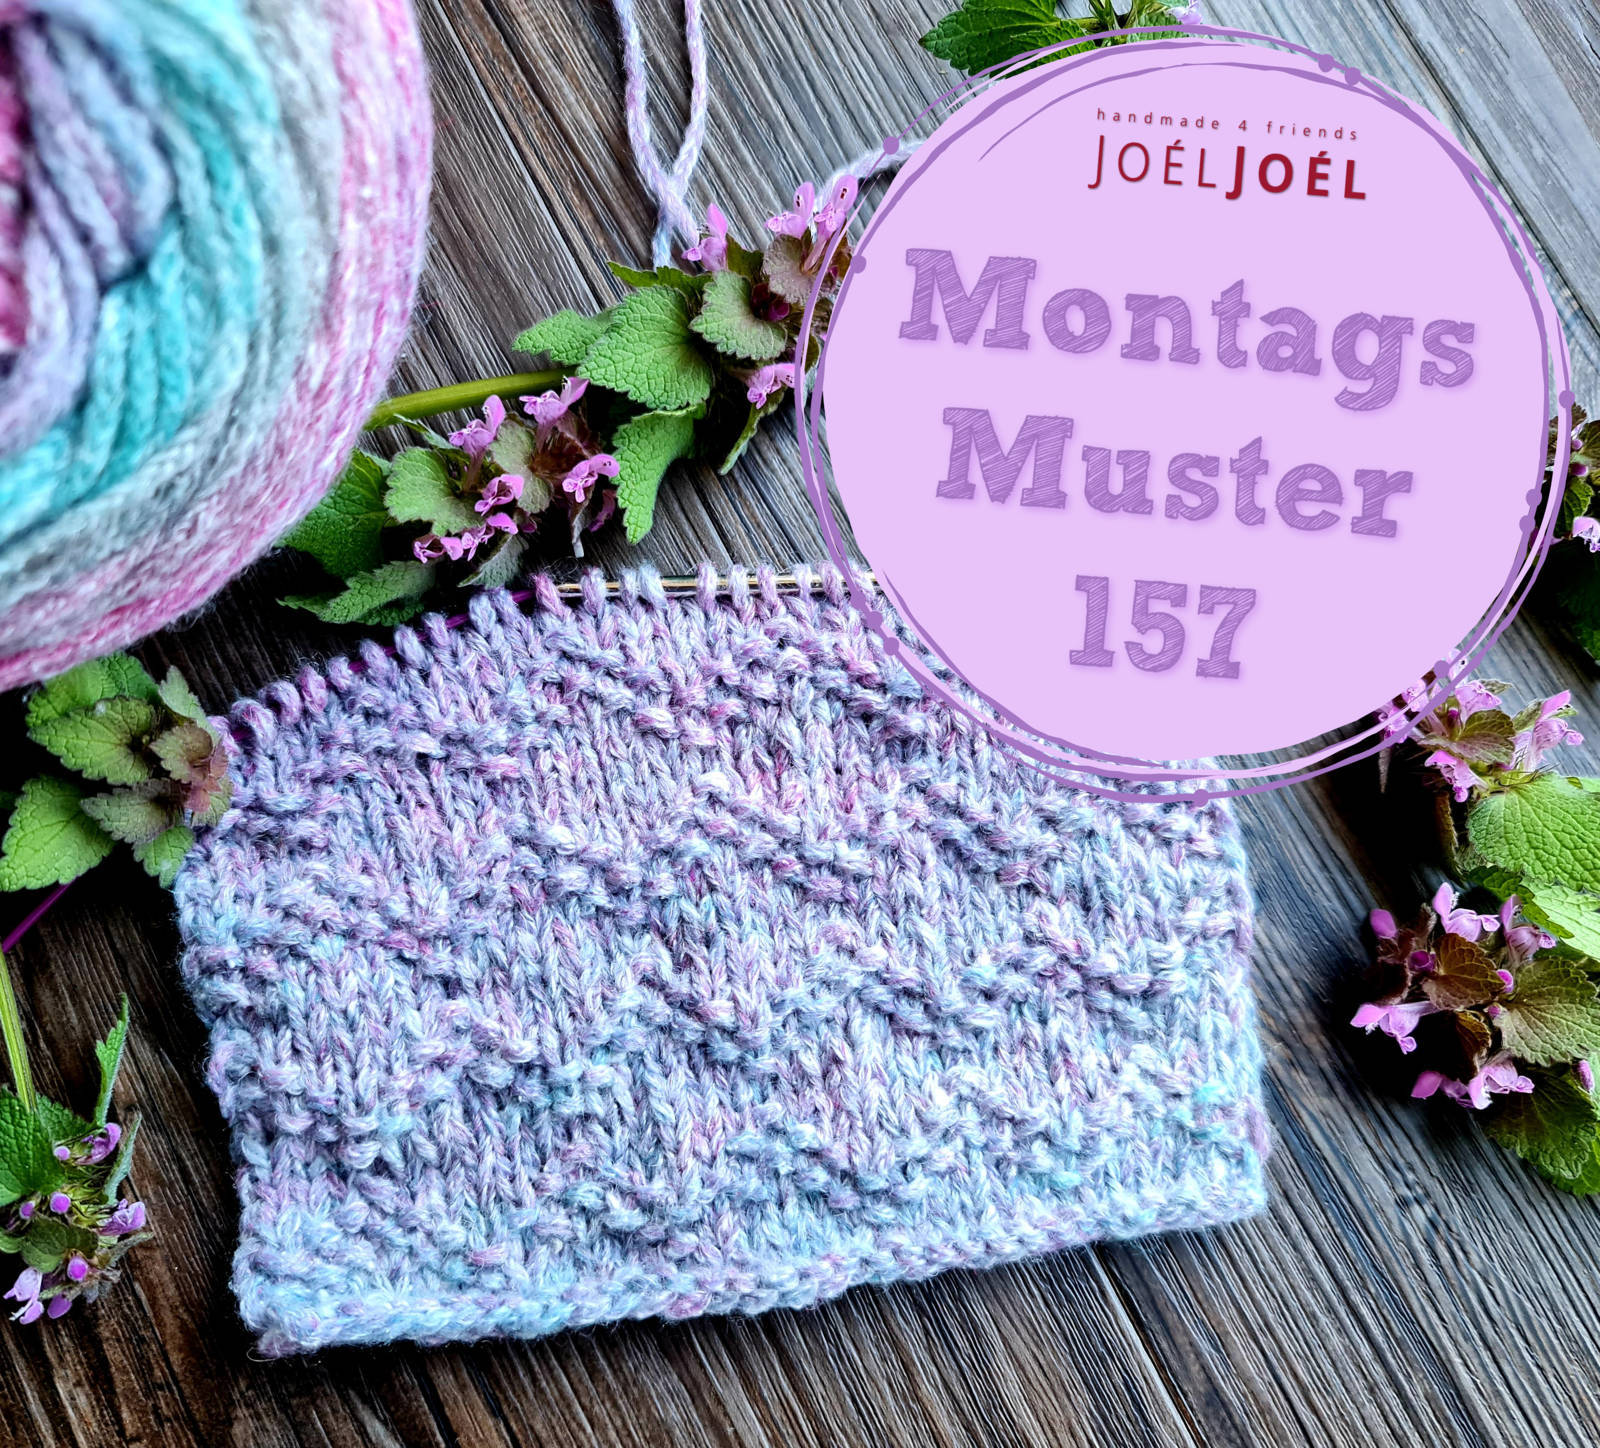 Montagsmuster, stricken, Strickmuster, Wolle, DIY